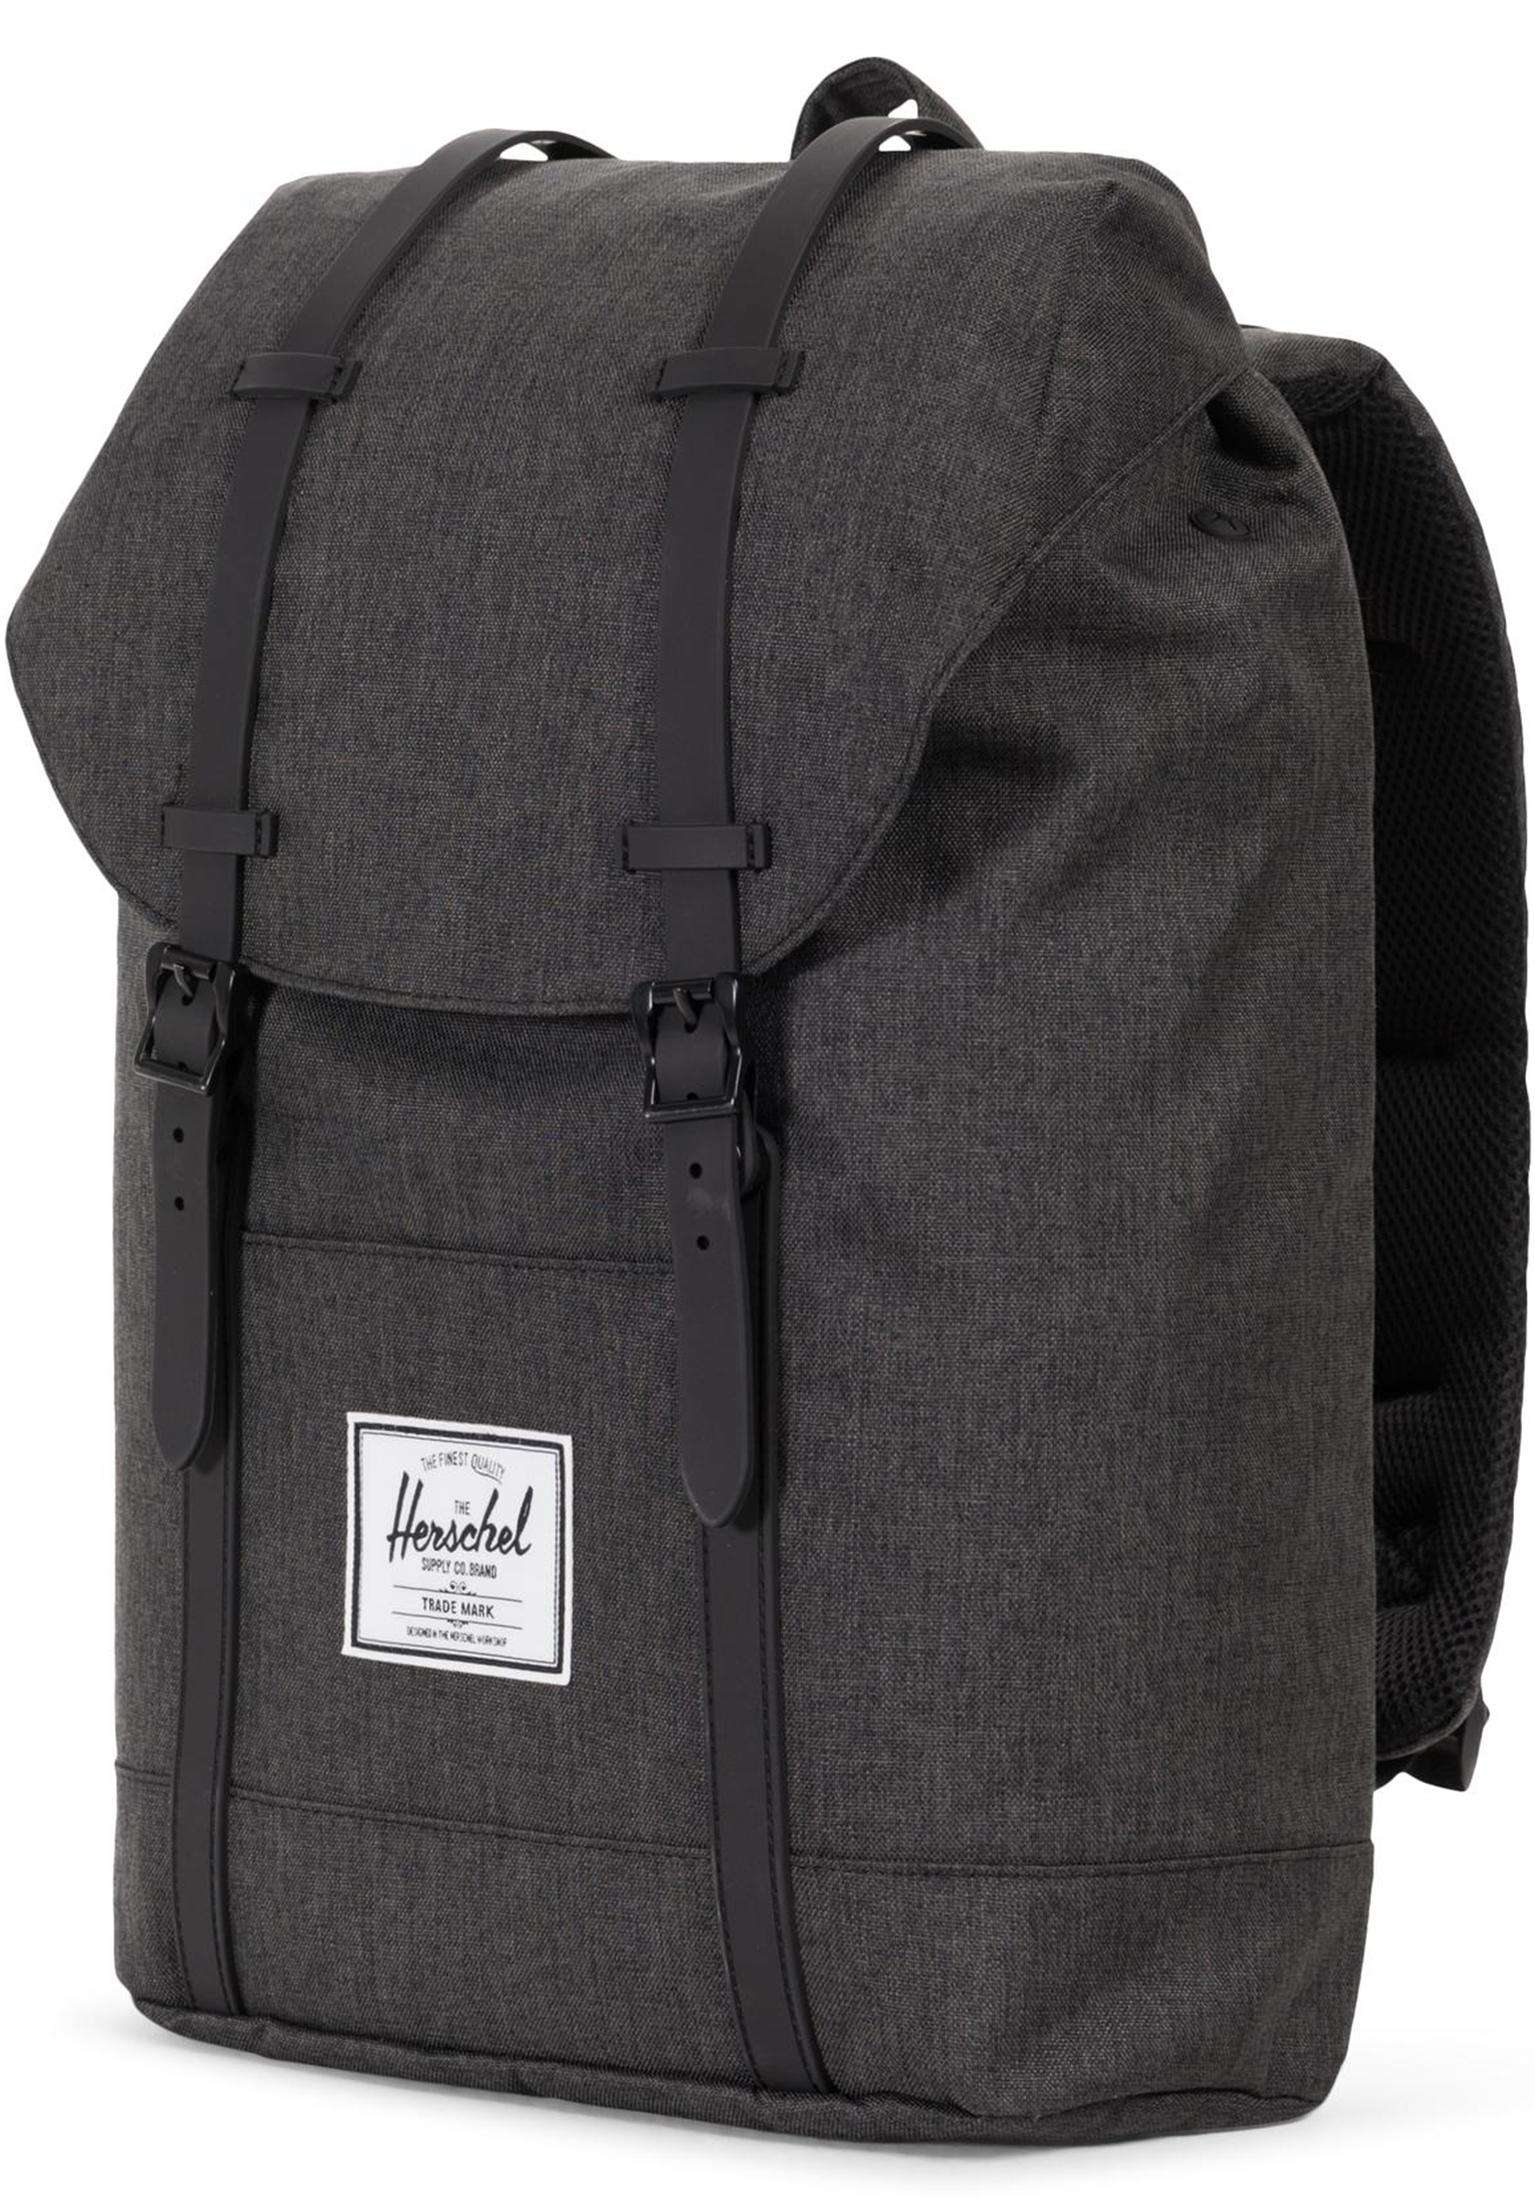 c4abfb24c01f0 Retreat Herschel Backpacks in blackcrosshatch-blackrubber for Men ...